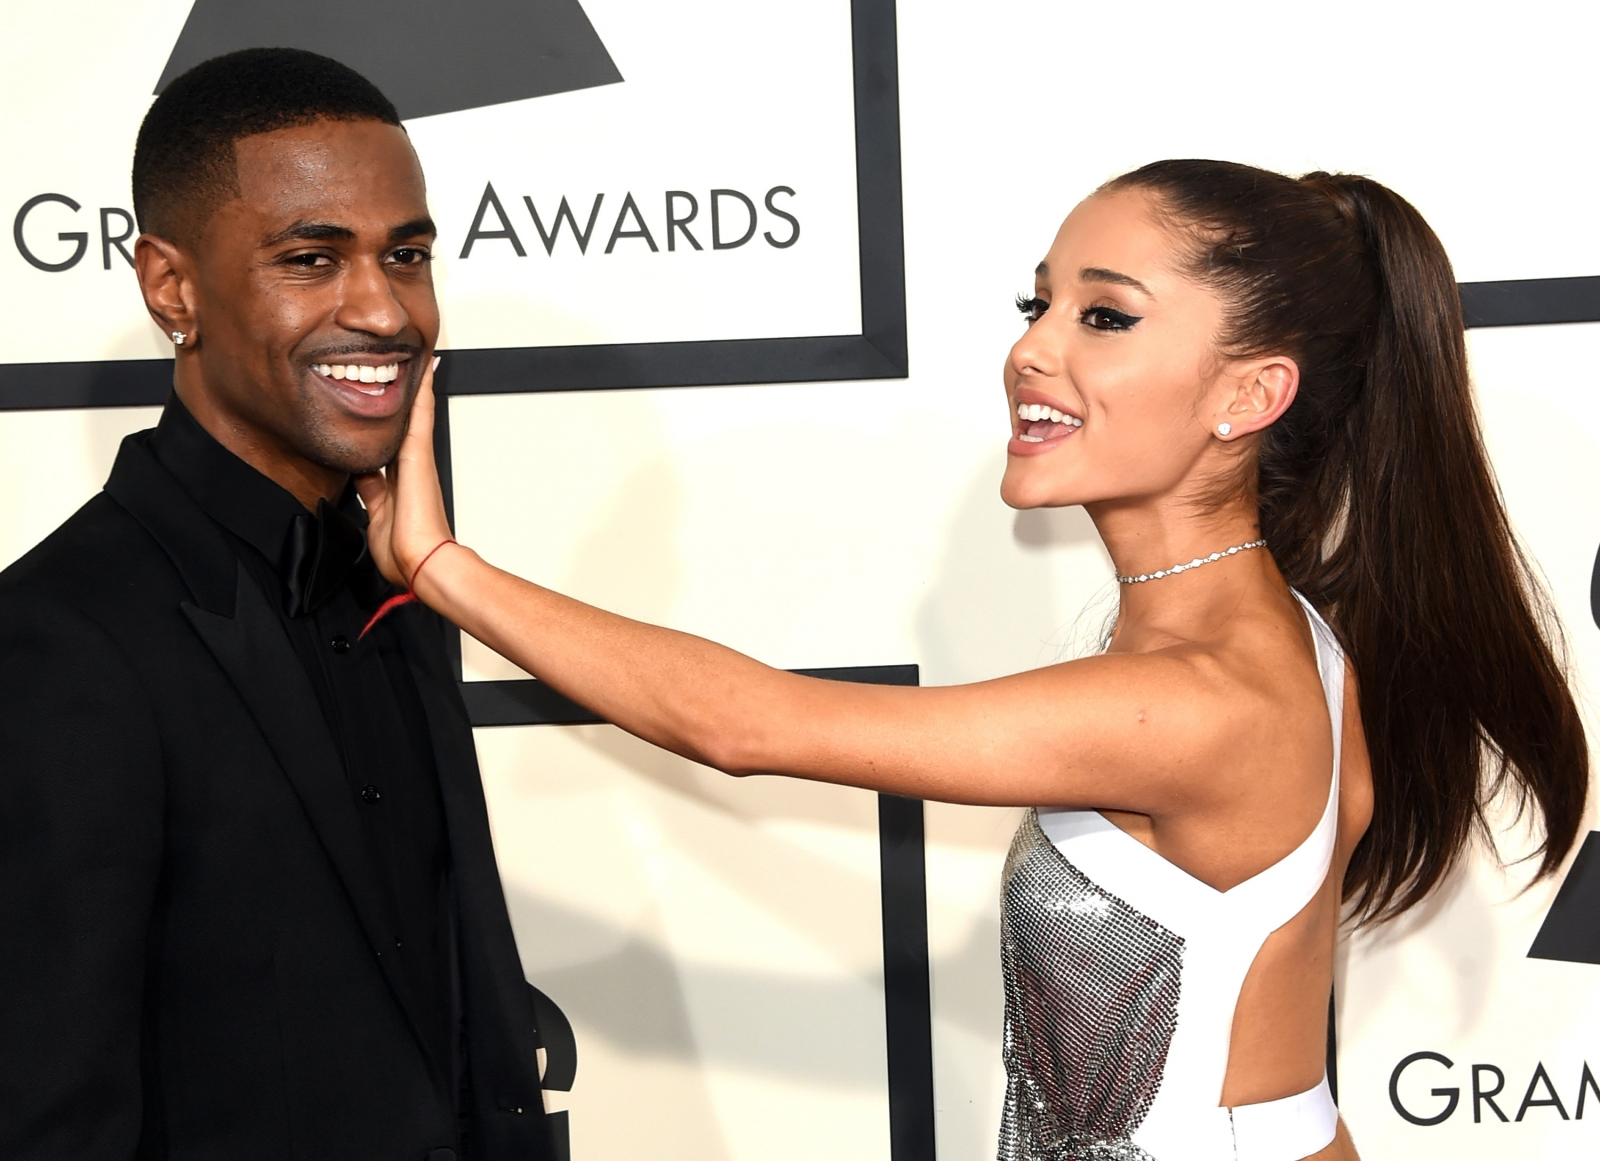 Ariana Grande and Big Sean